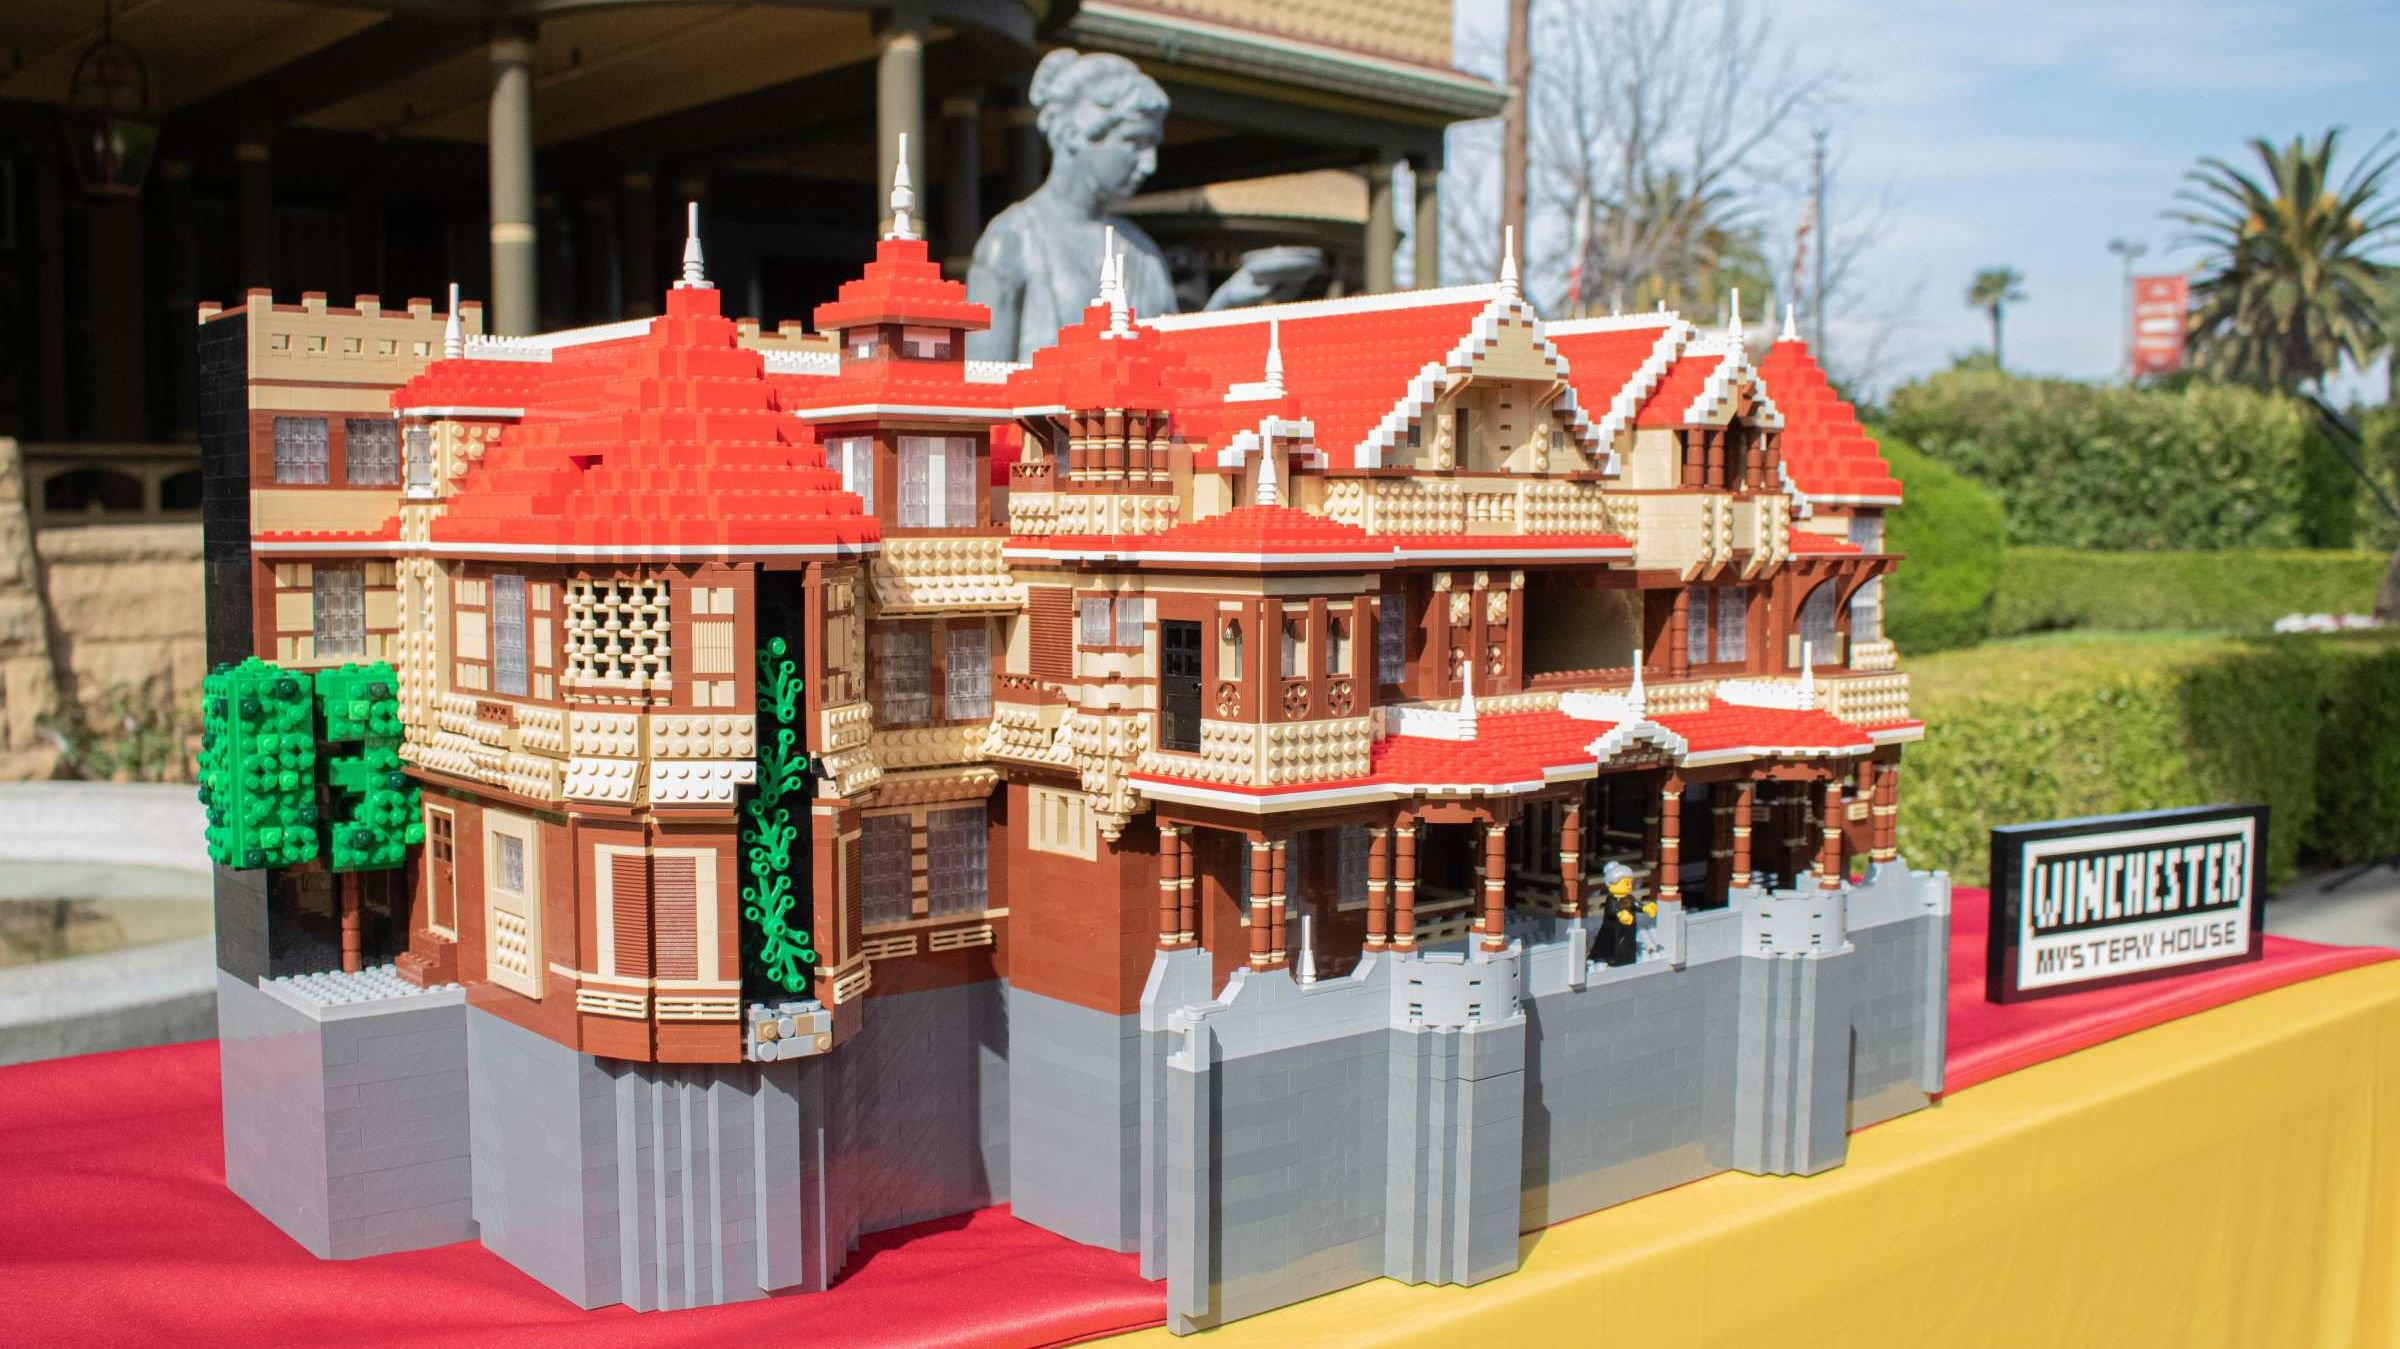 The Winchester Mystery House Was Recreated With More Than 7500 LEGO Bricks